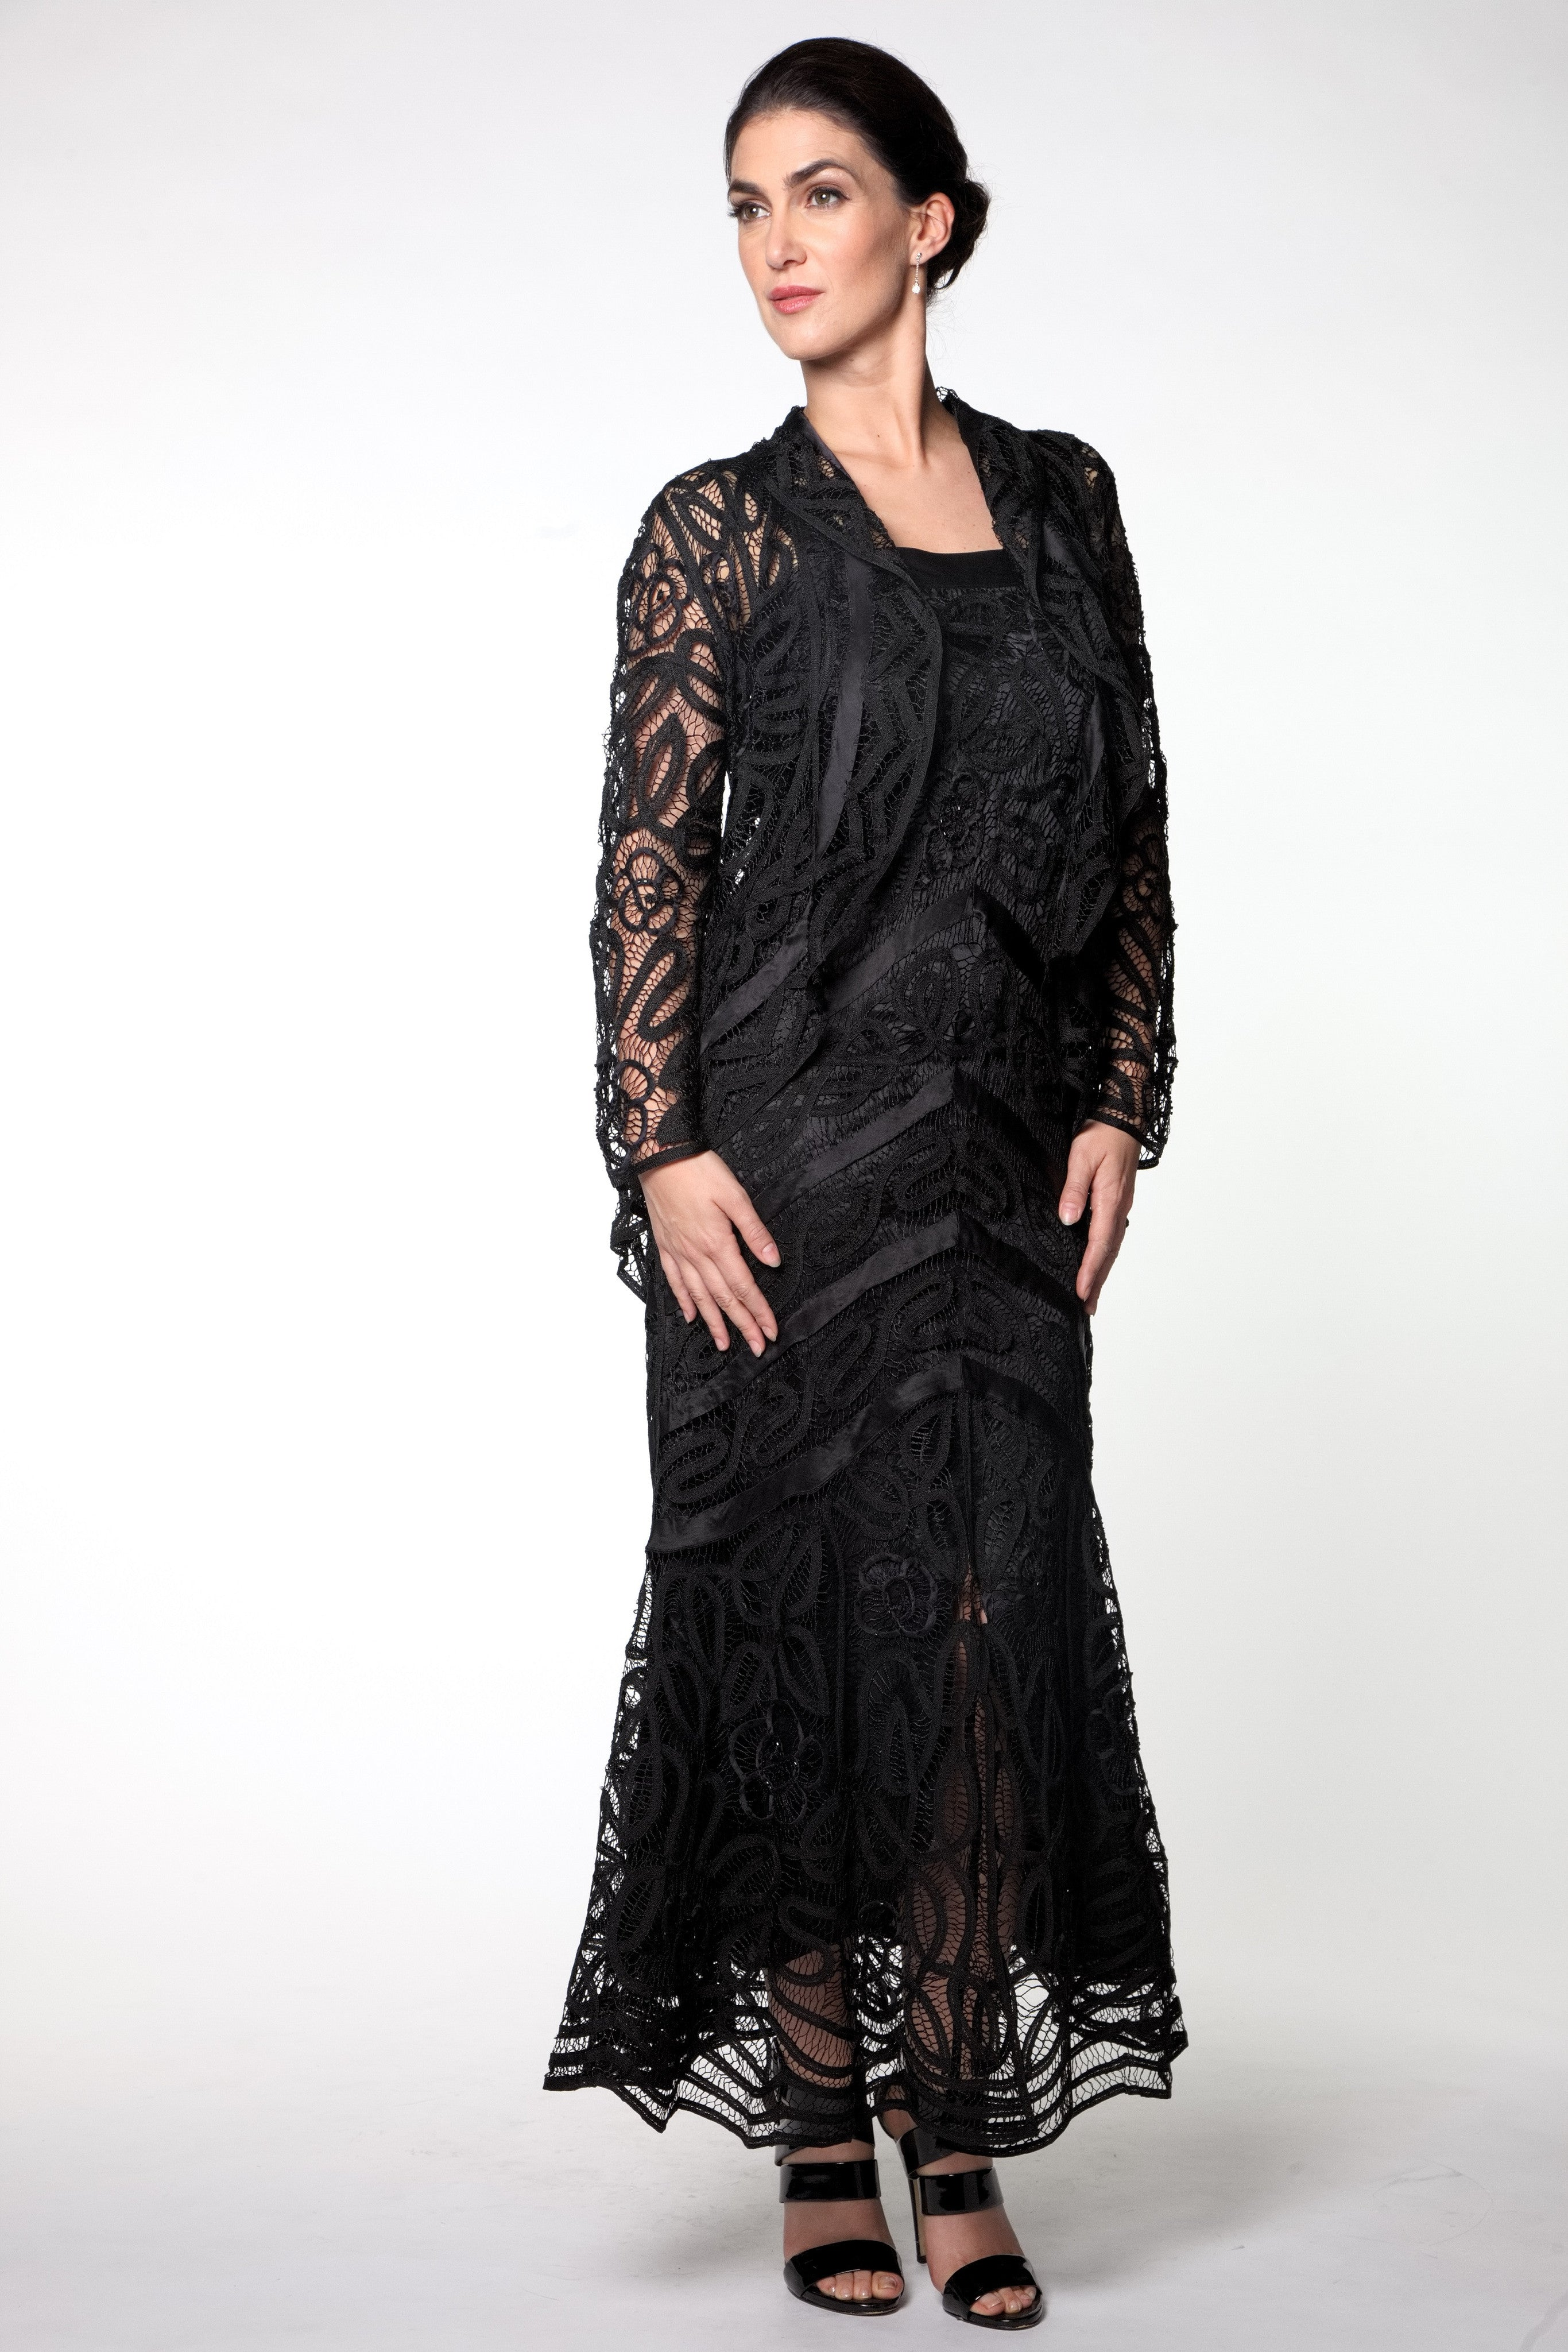 D7069 Hand Croched Dress and Jacket